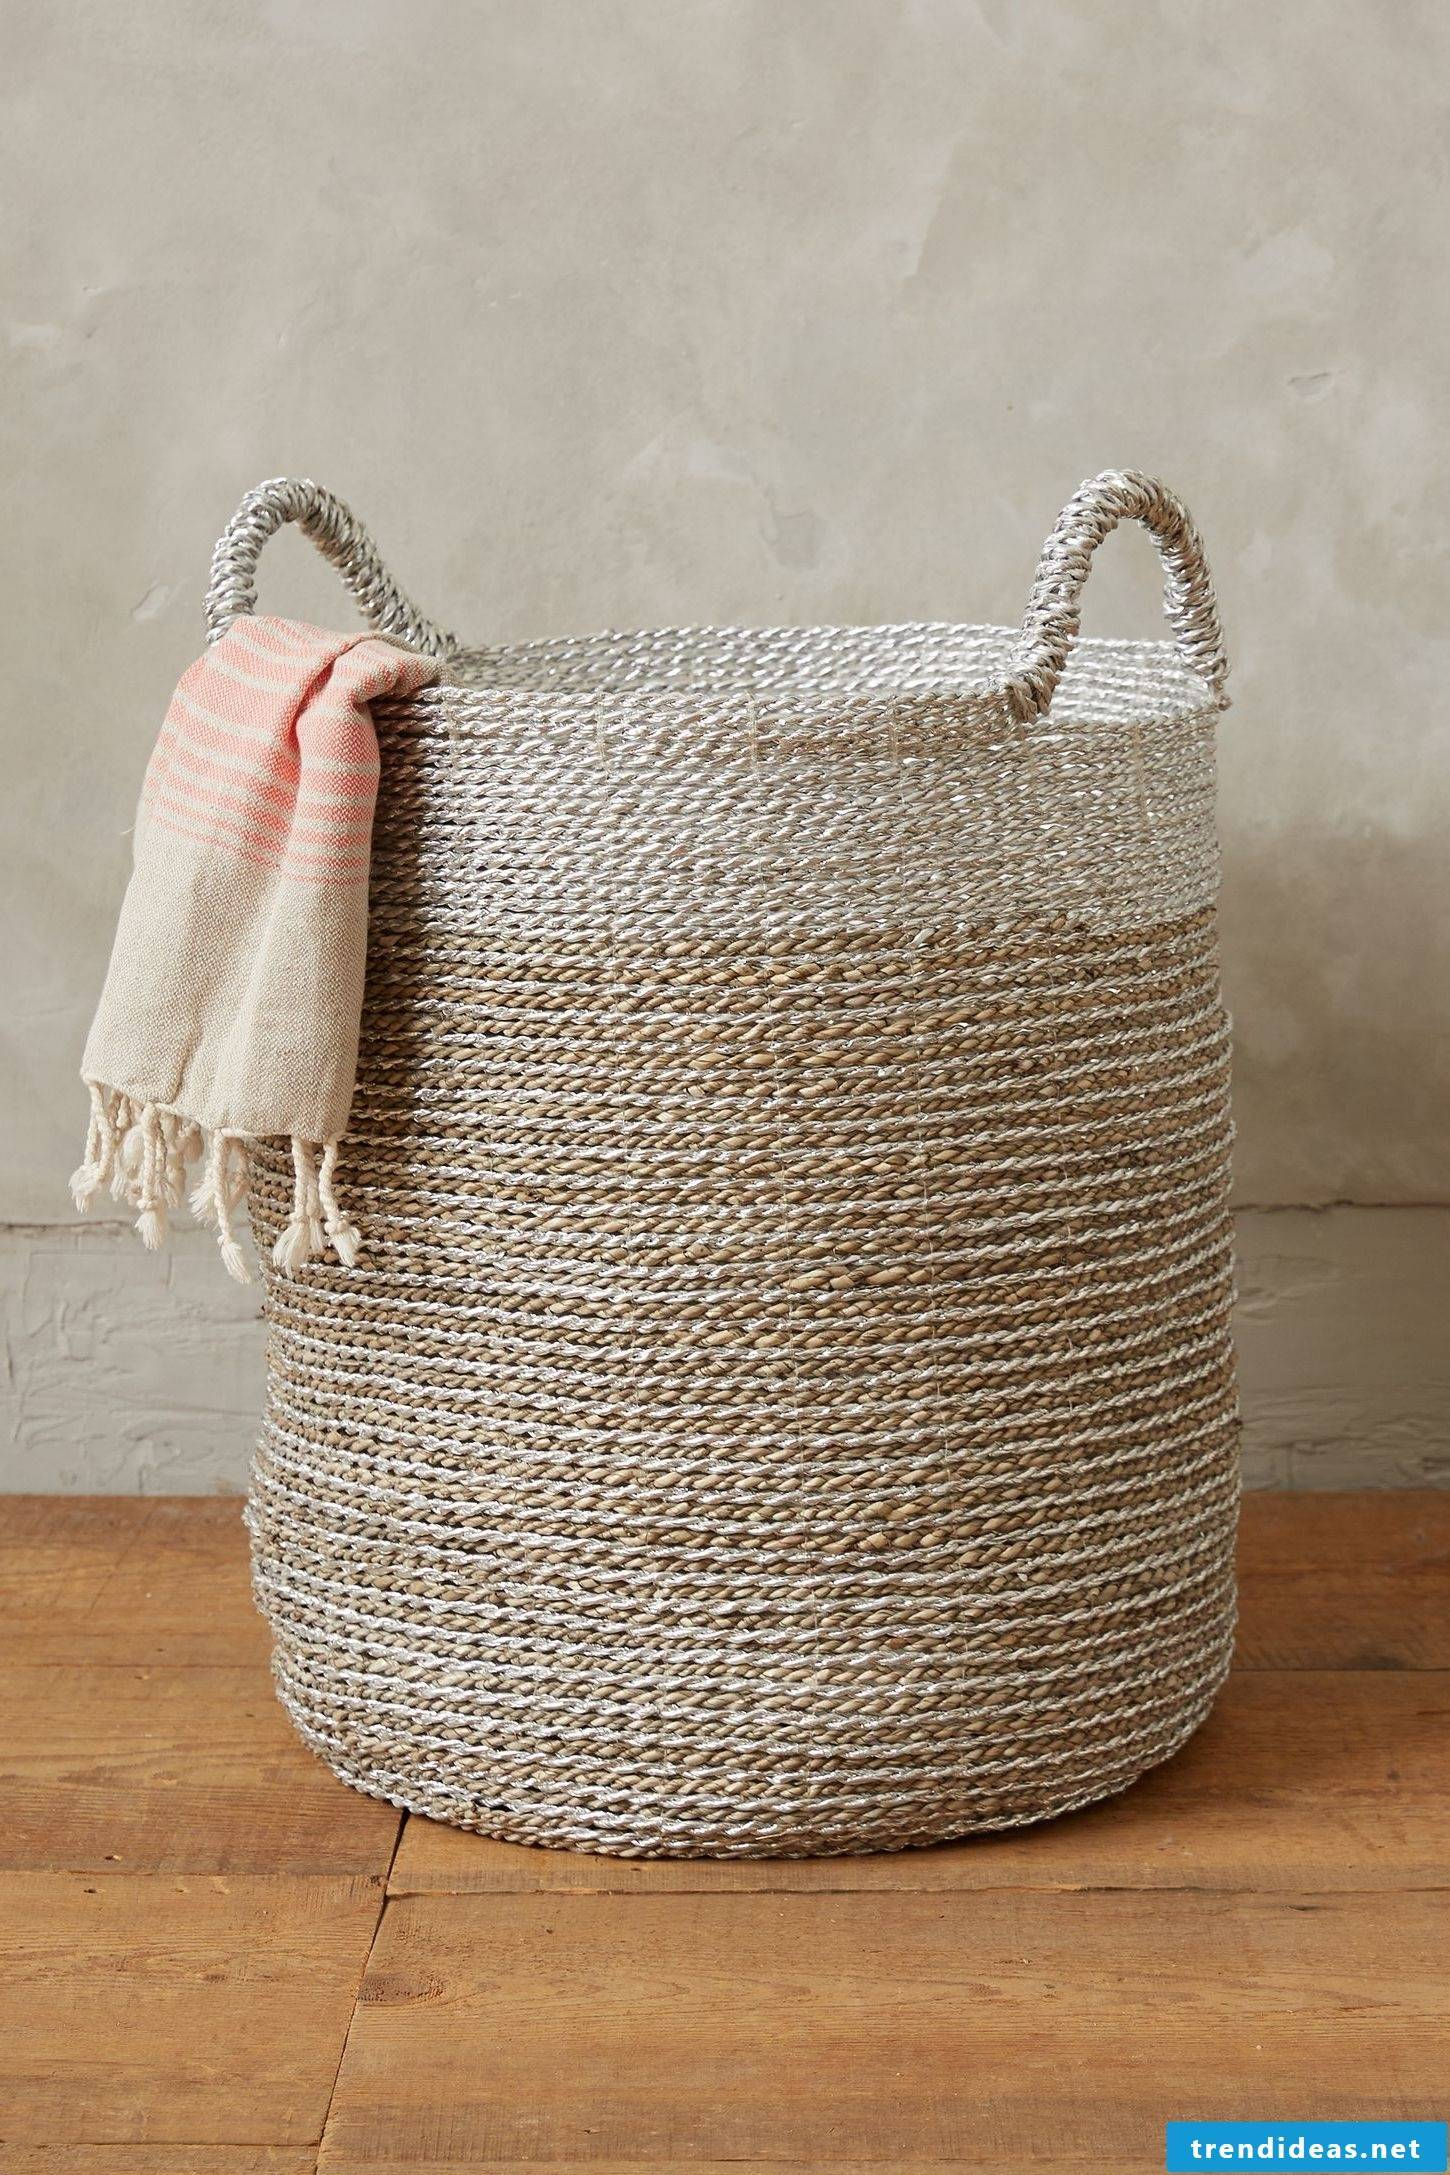 Great ideas for laundry basket